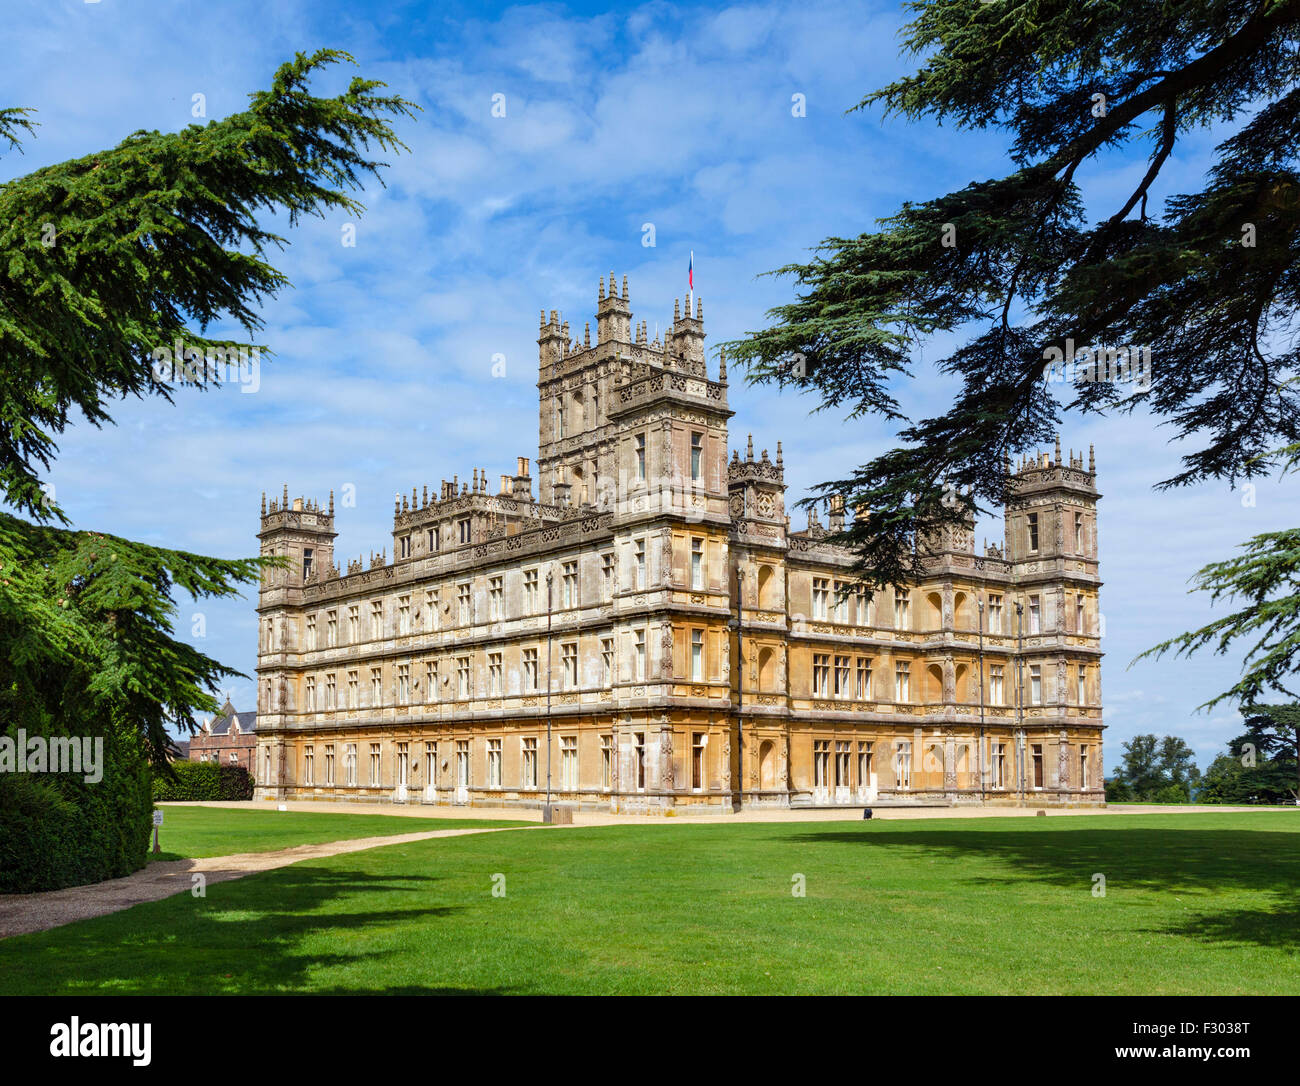 Highclere Castle, Downton Abbey in the TV series of the same name, Hampshire, England, UK - Stock Image